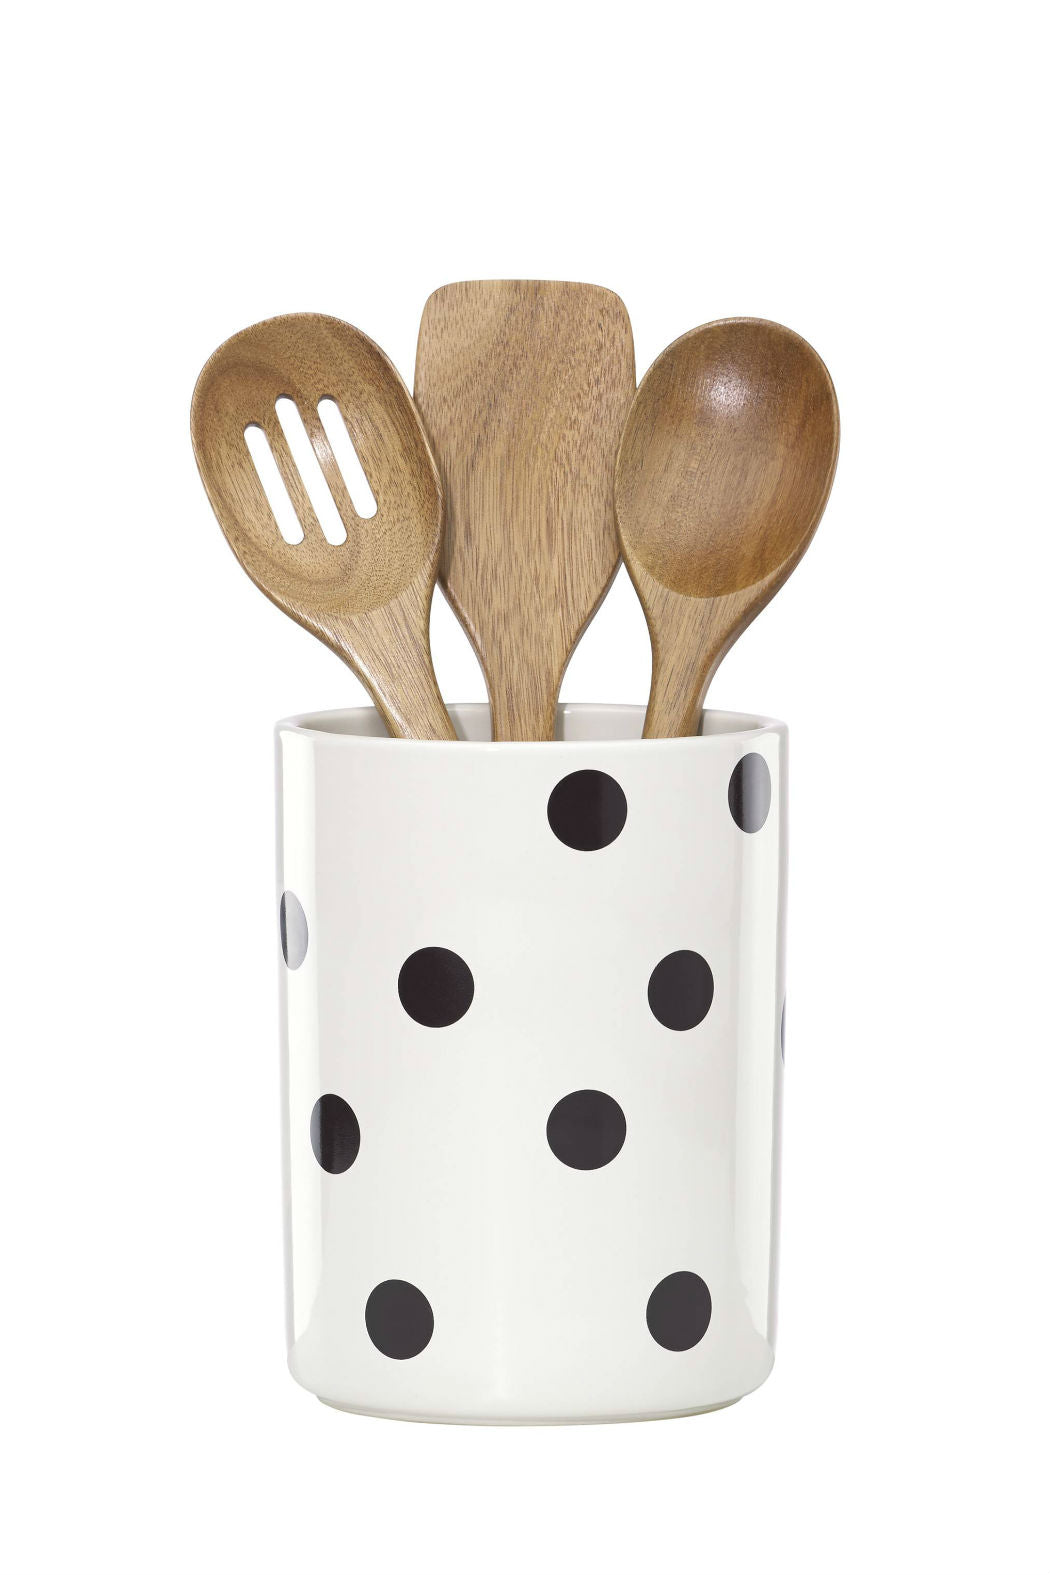 tabletop spade kirby kate kitchen dining lee over smith